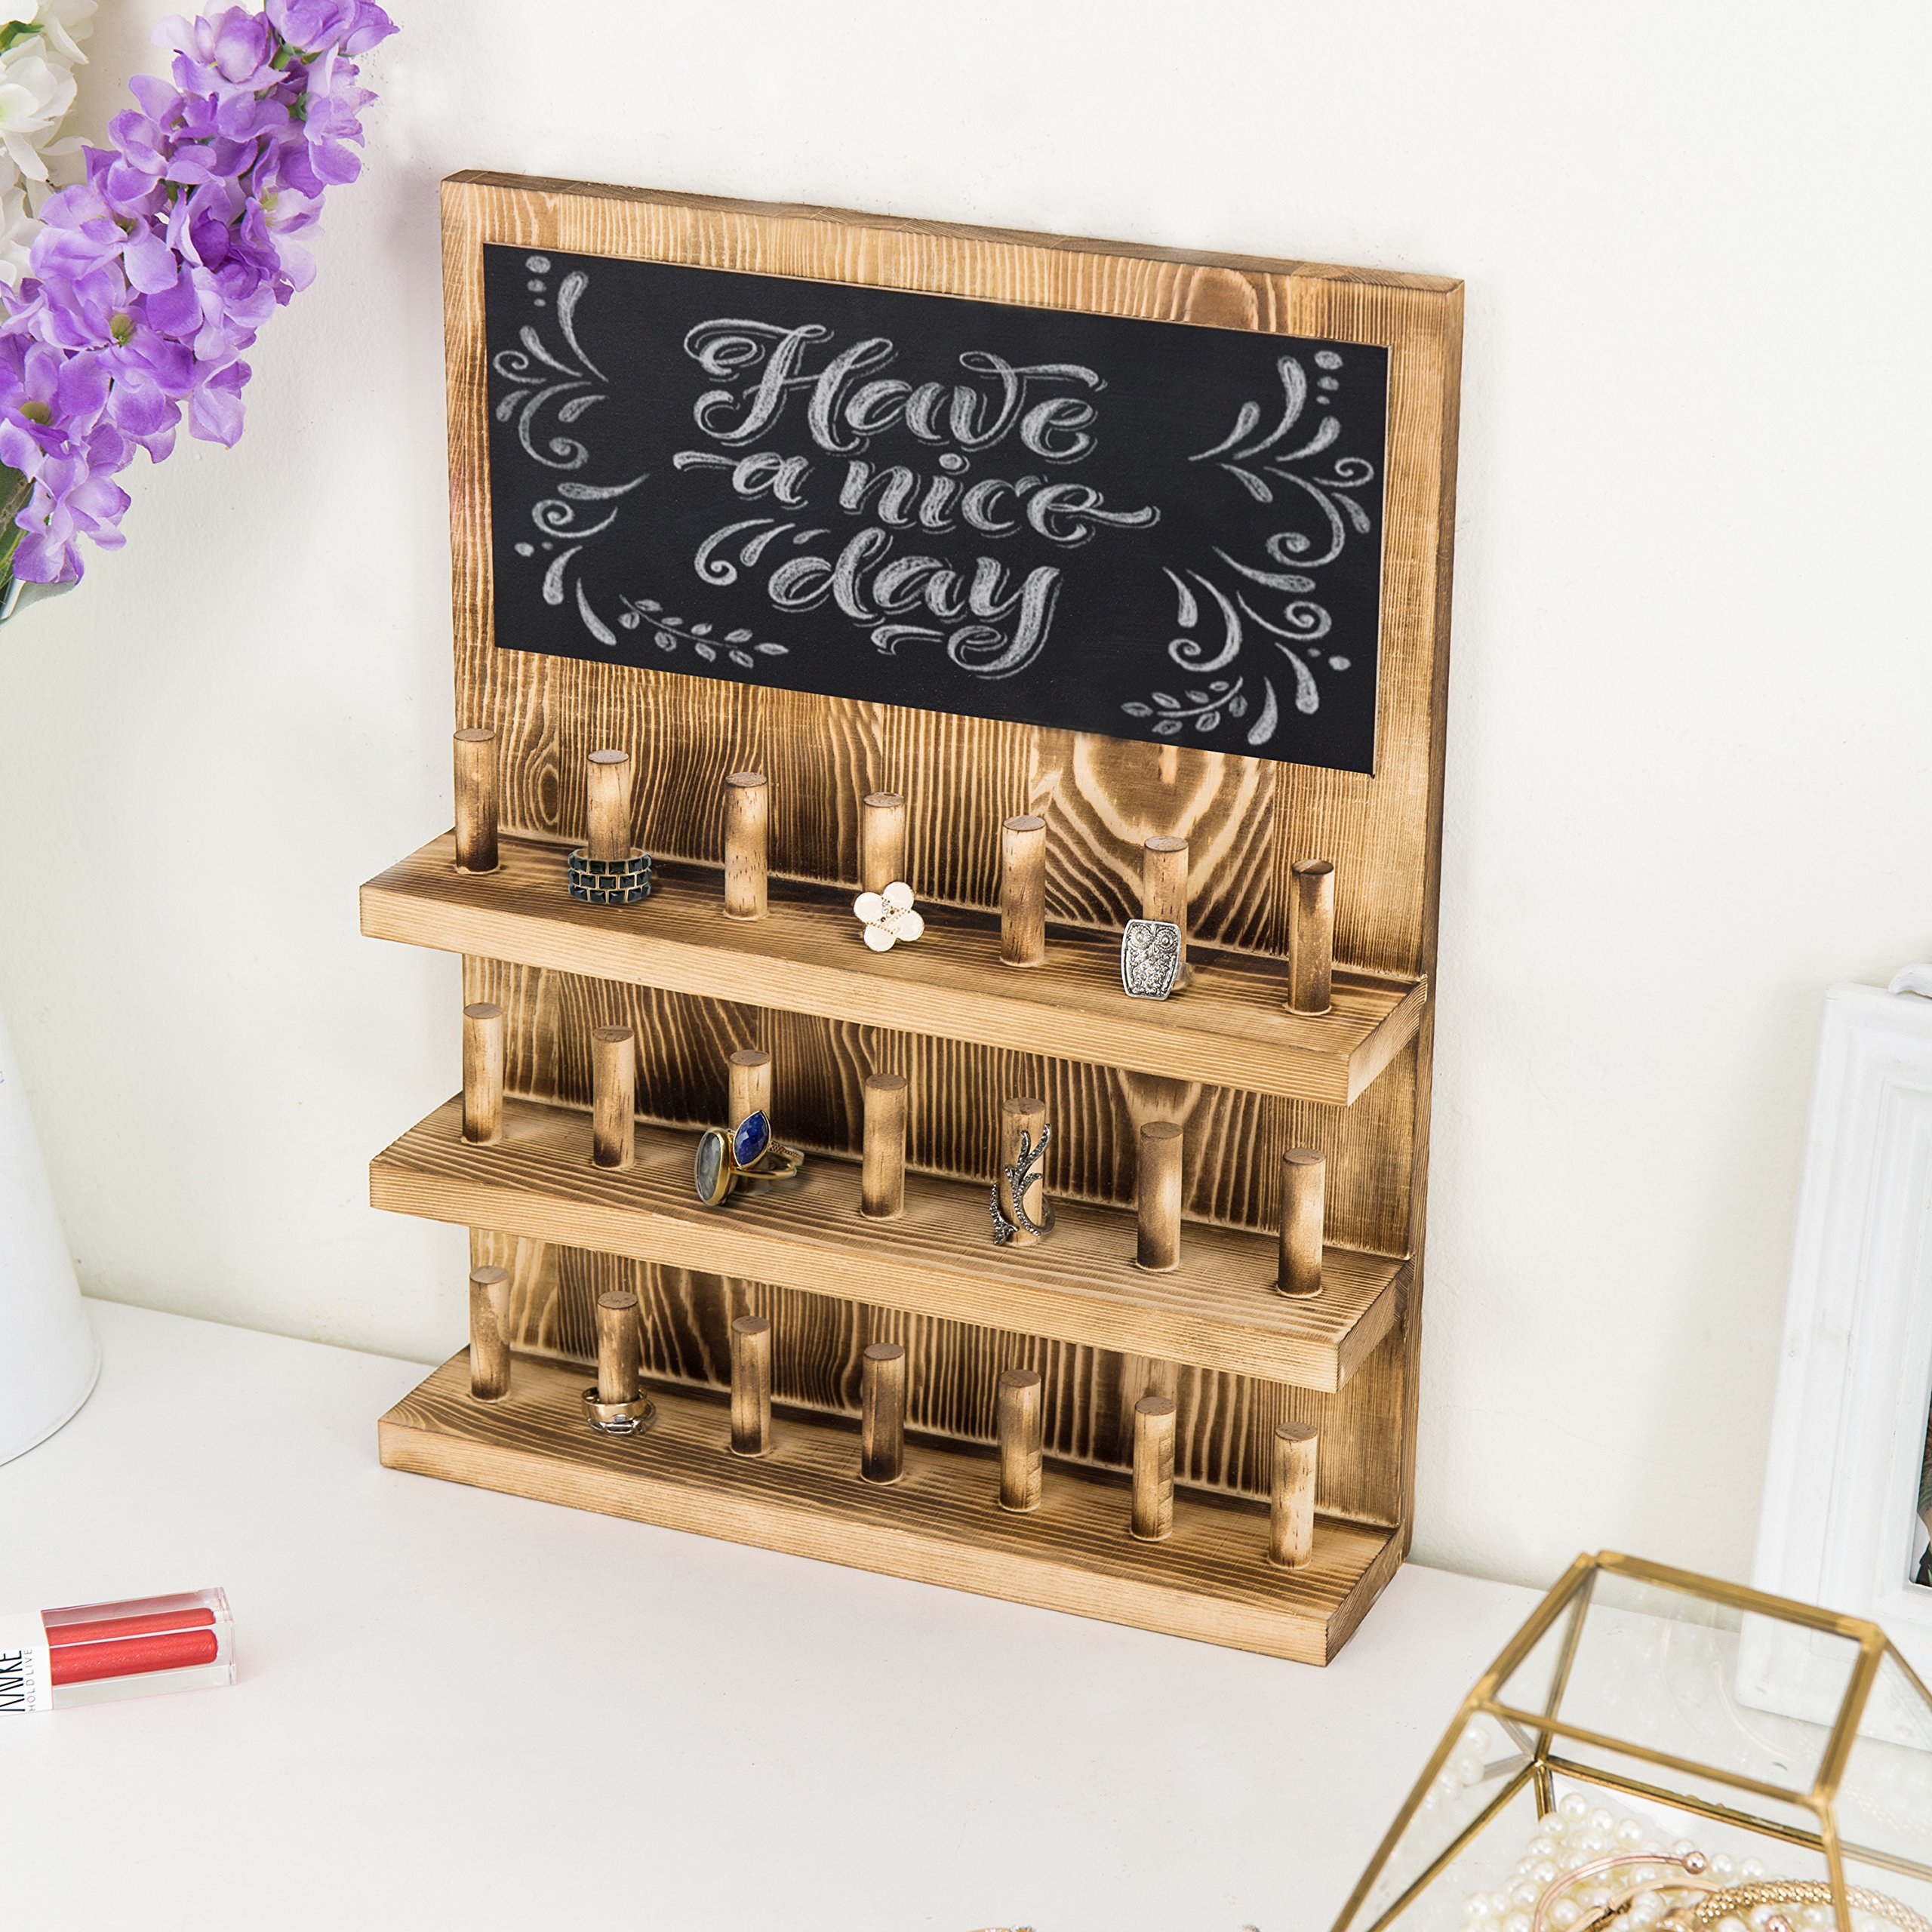 MyGift 3-Tier Wall-Mounted Wood Ring Display Rack with Chalkboard by MyGift (Image #5)